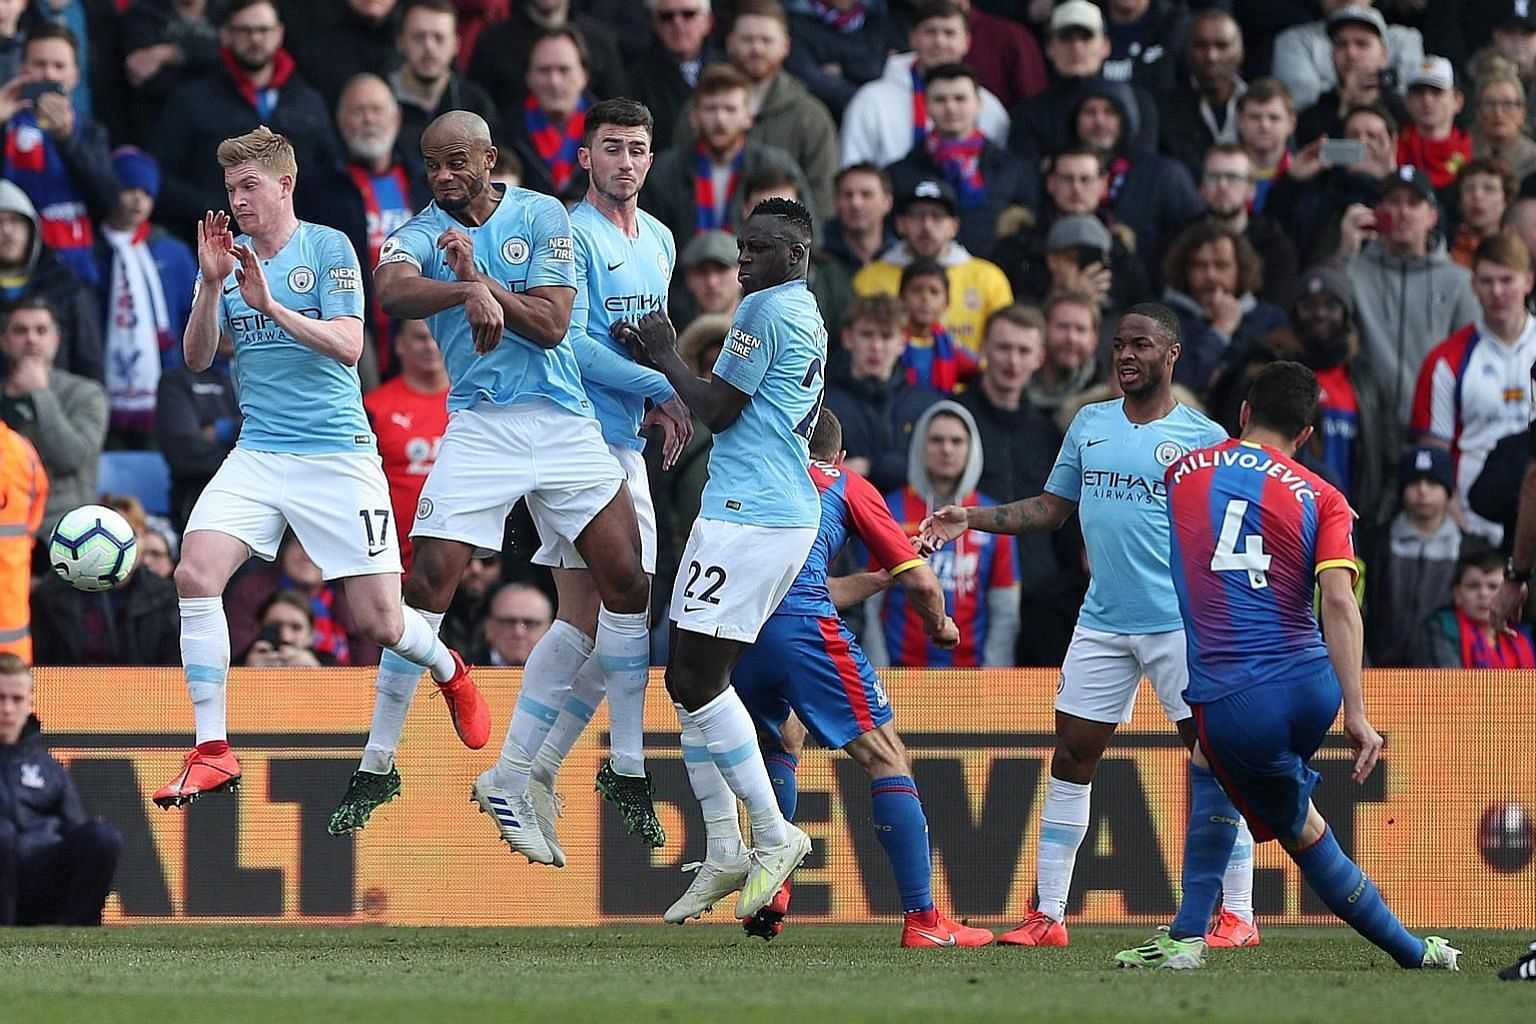 Crystal Palace and Manchester City facing off in a match on Sunday. The Singapore High Court last week granted an order sought by the London-based Football Association Premier League (FA), for nine key Internet service providers to block access by fa